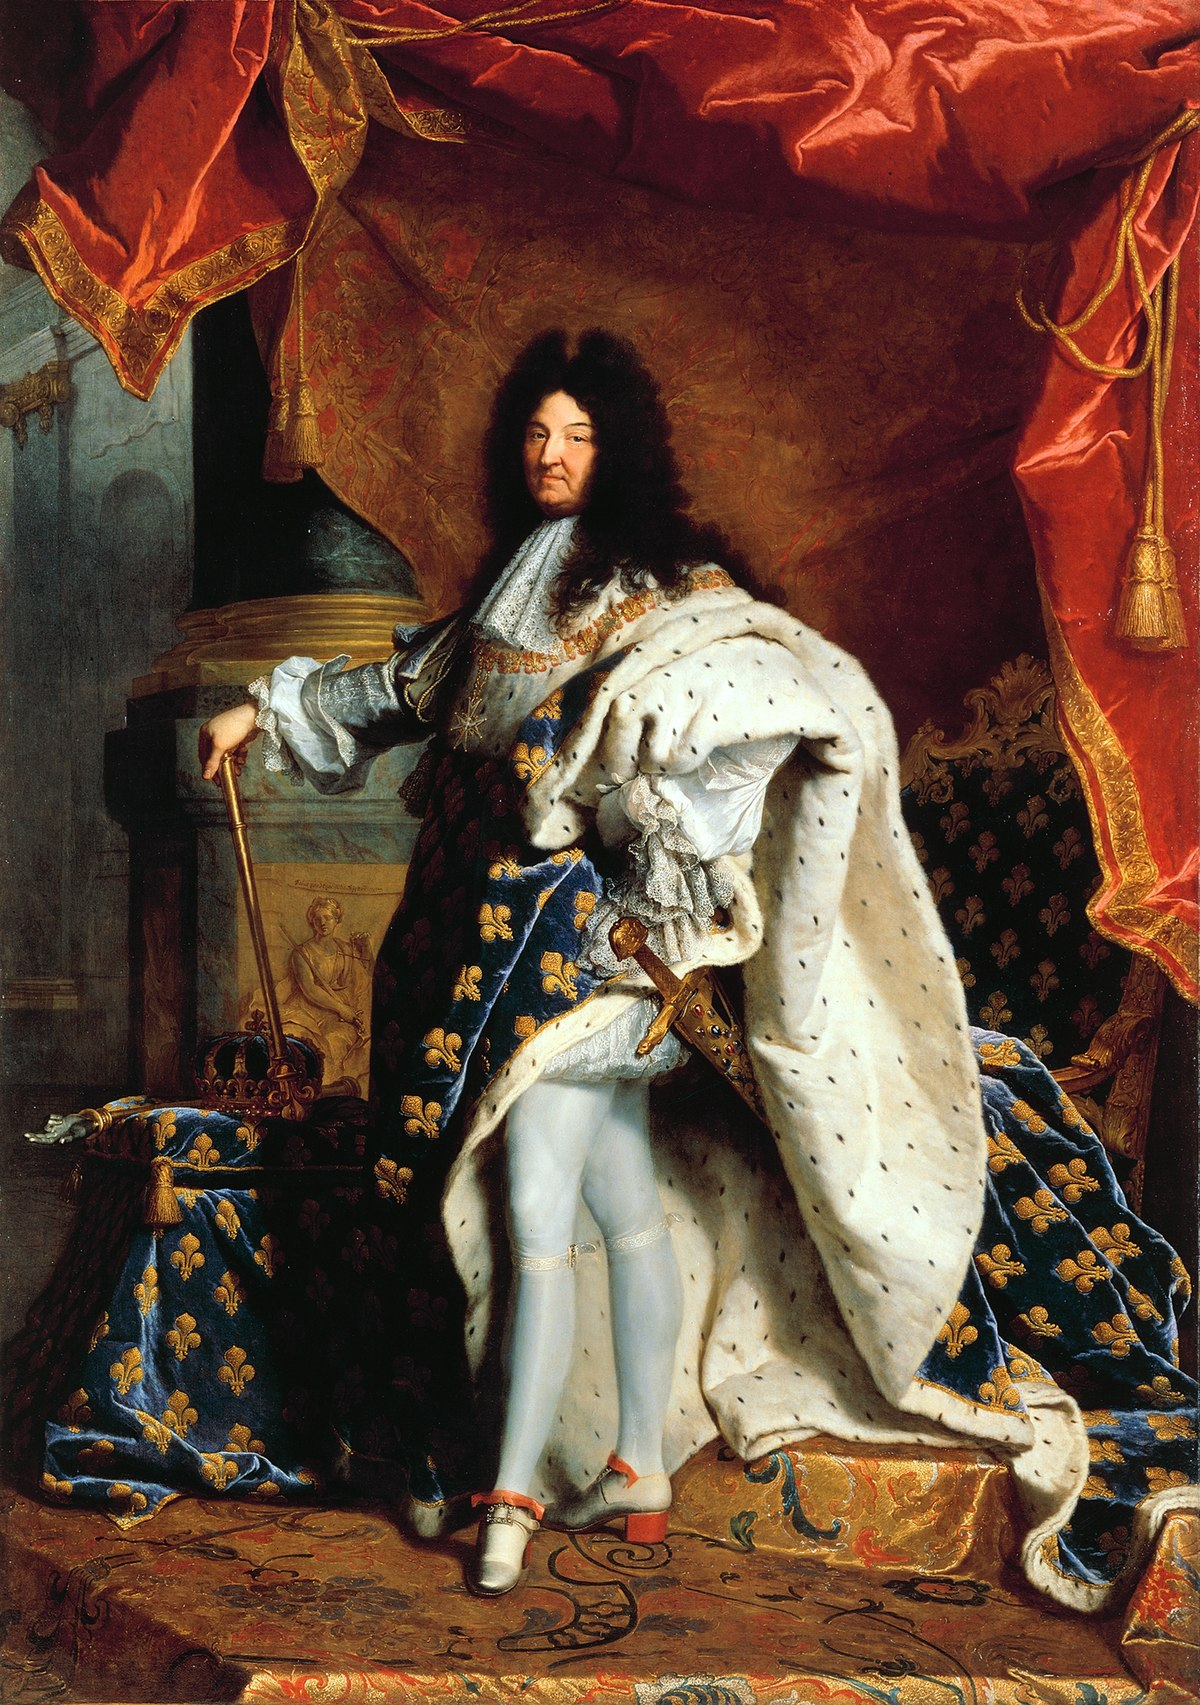 https://upload.wikimedia.org/wikipedia/commons/thumb/5/5f/Louis_XIV_of_France.jpg/1200px-Louis_XIV_of_France.jpg